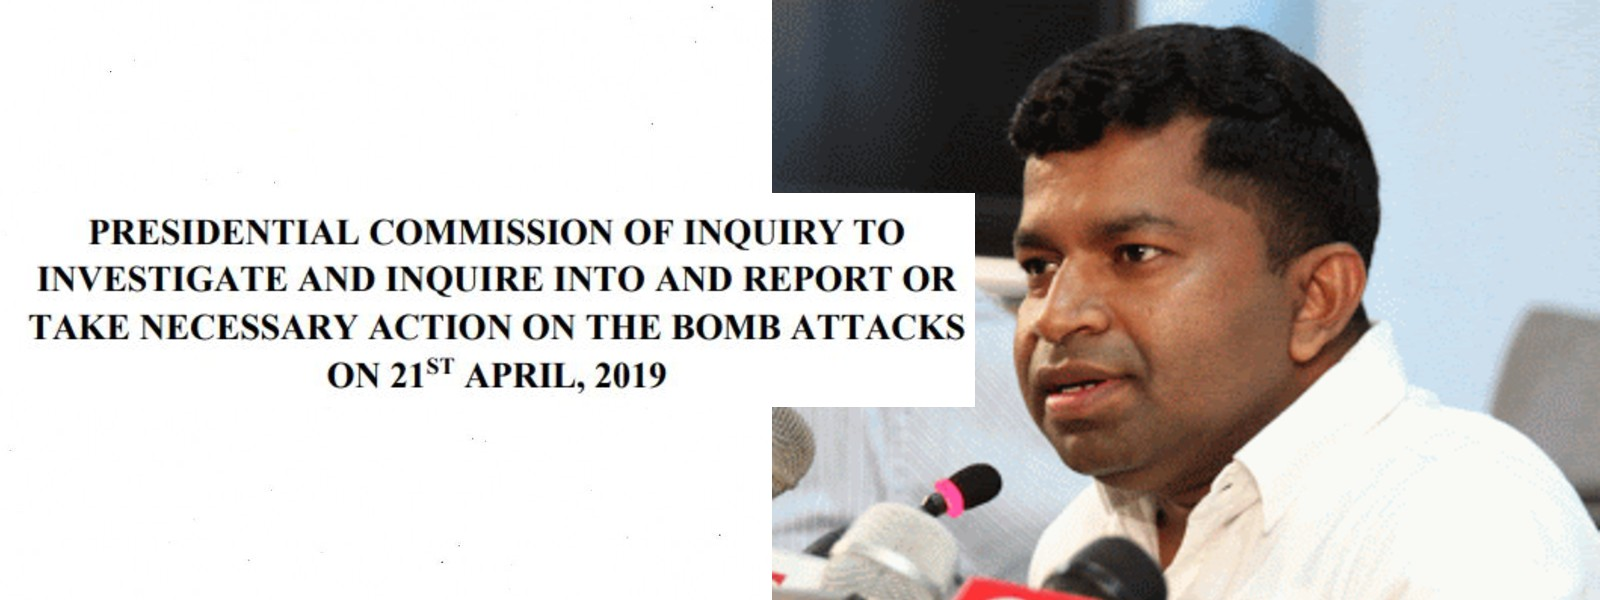 'Pillayan' testifies for the first time at PCoI probing 2019 April Attacks